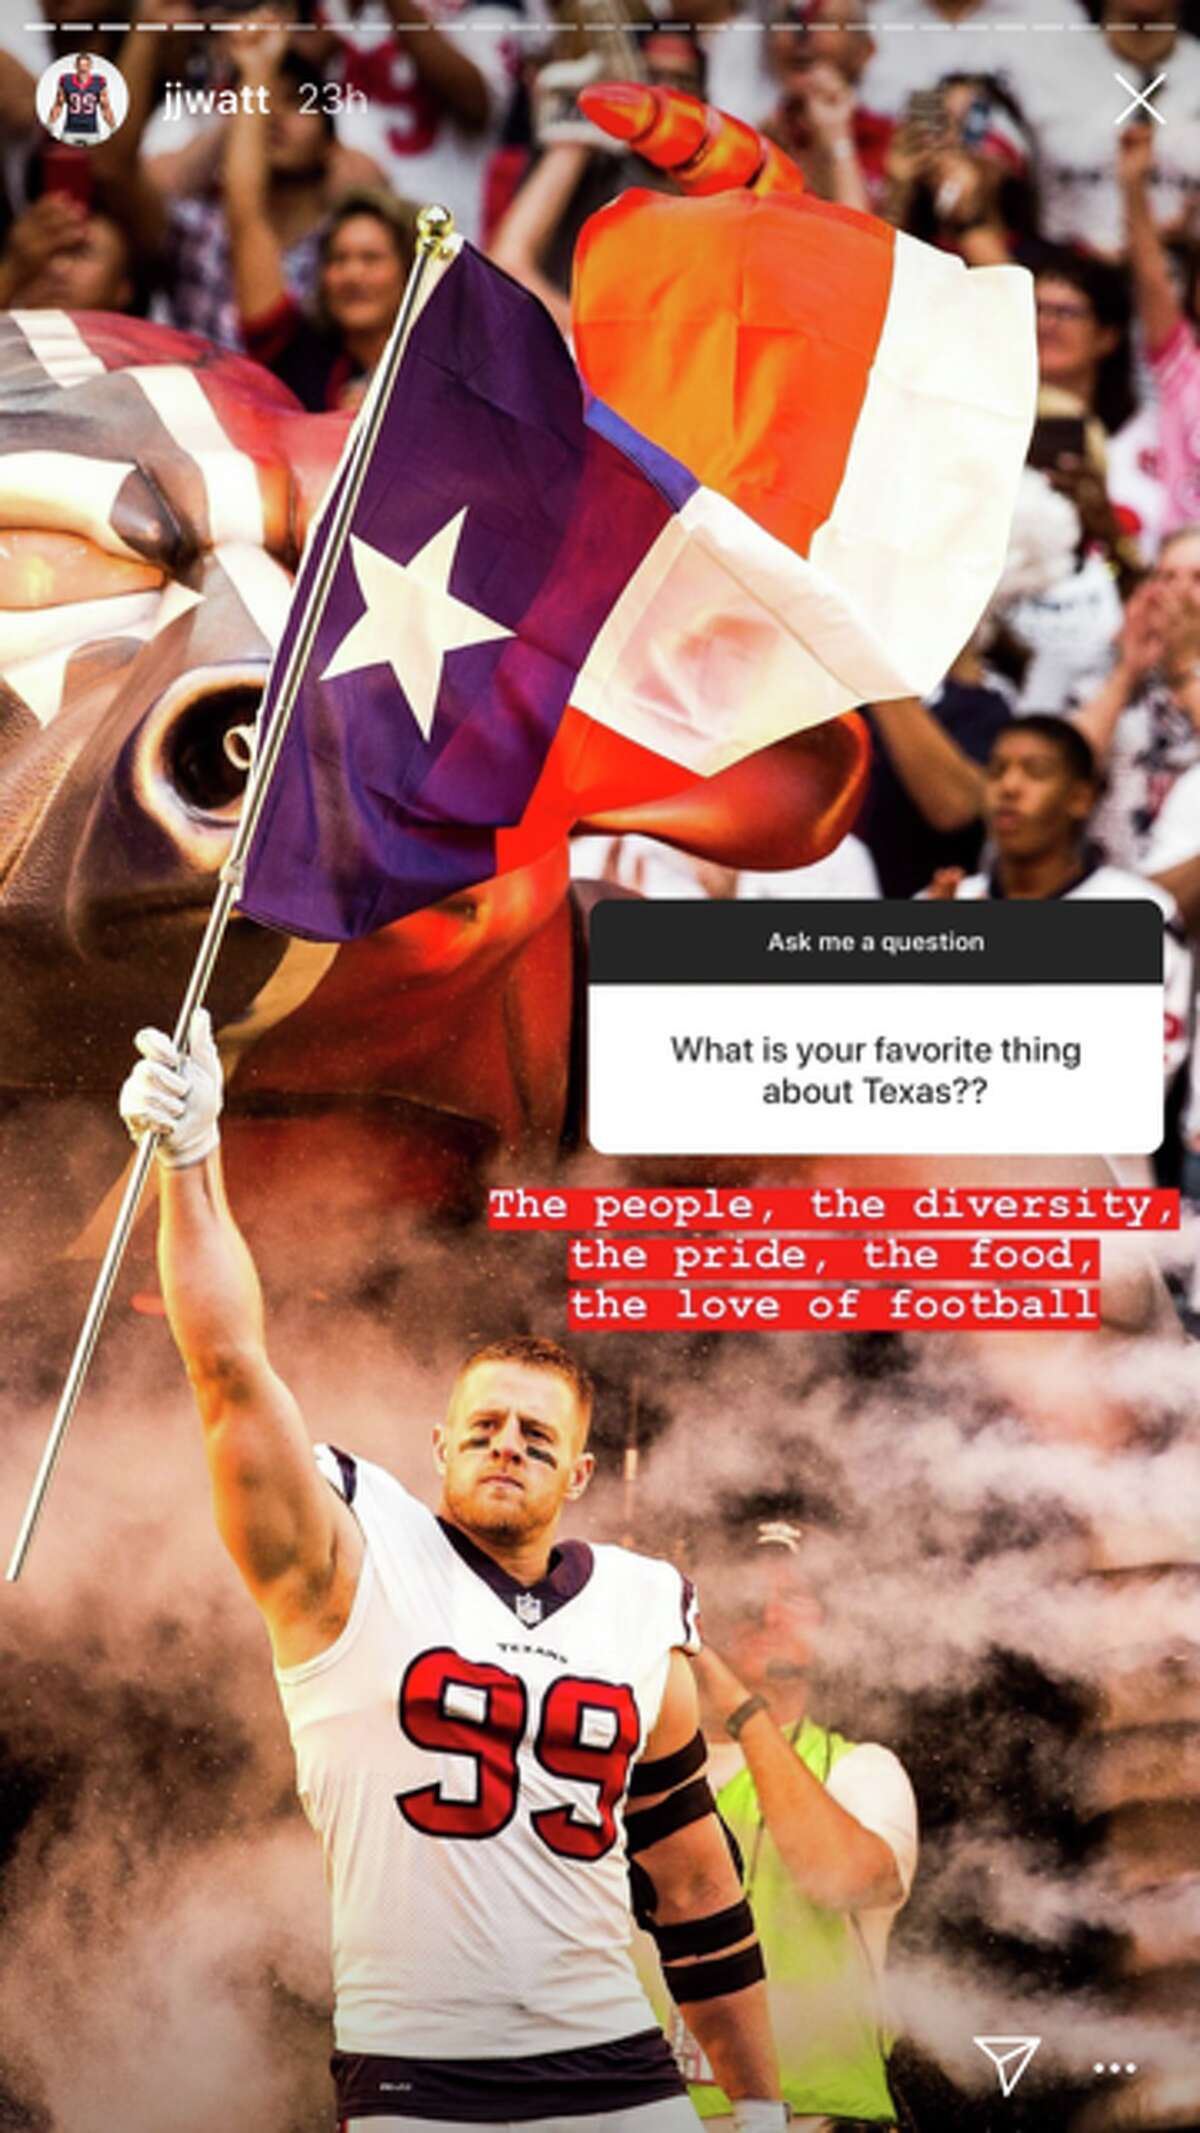 Fan question: What is your favorite thing about Texas? @jjwatt'sanswer: The people, the diversity, the pride, the food, the love of football.